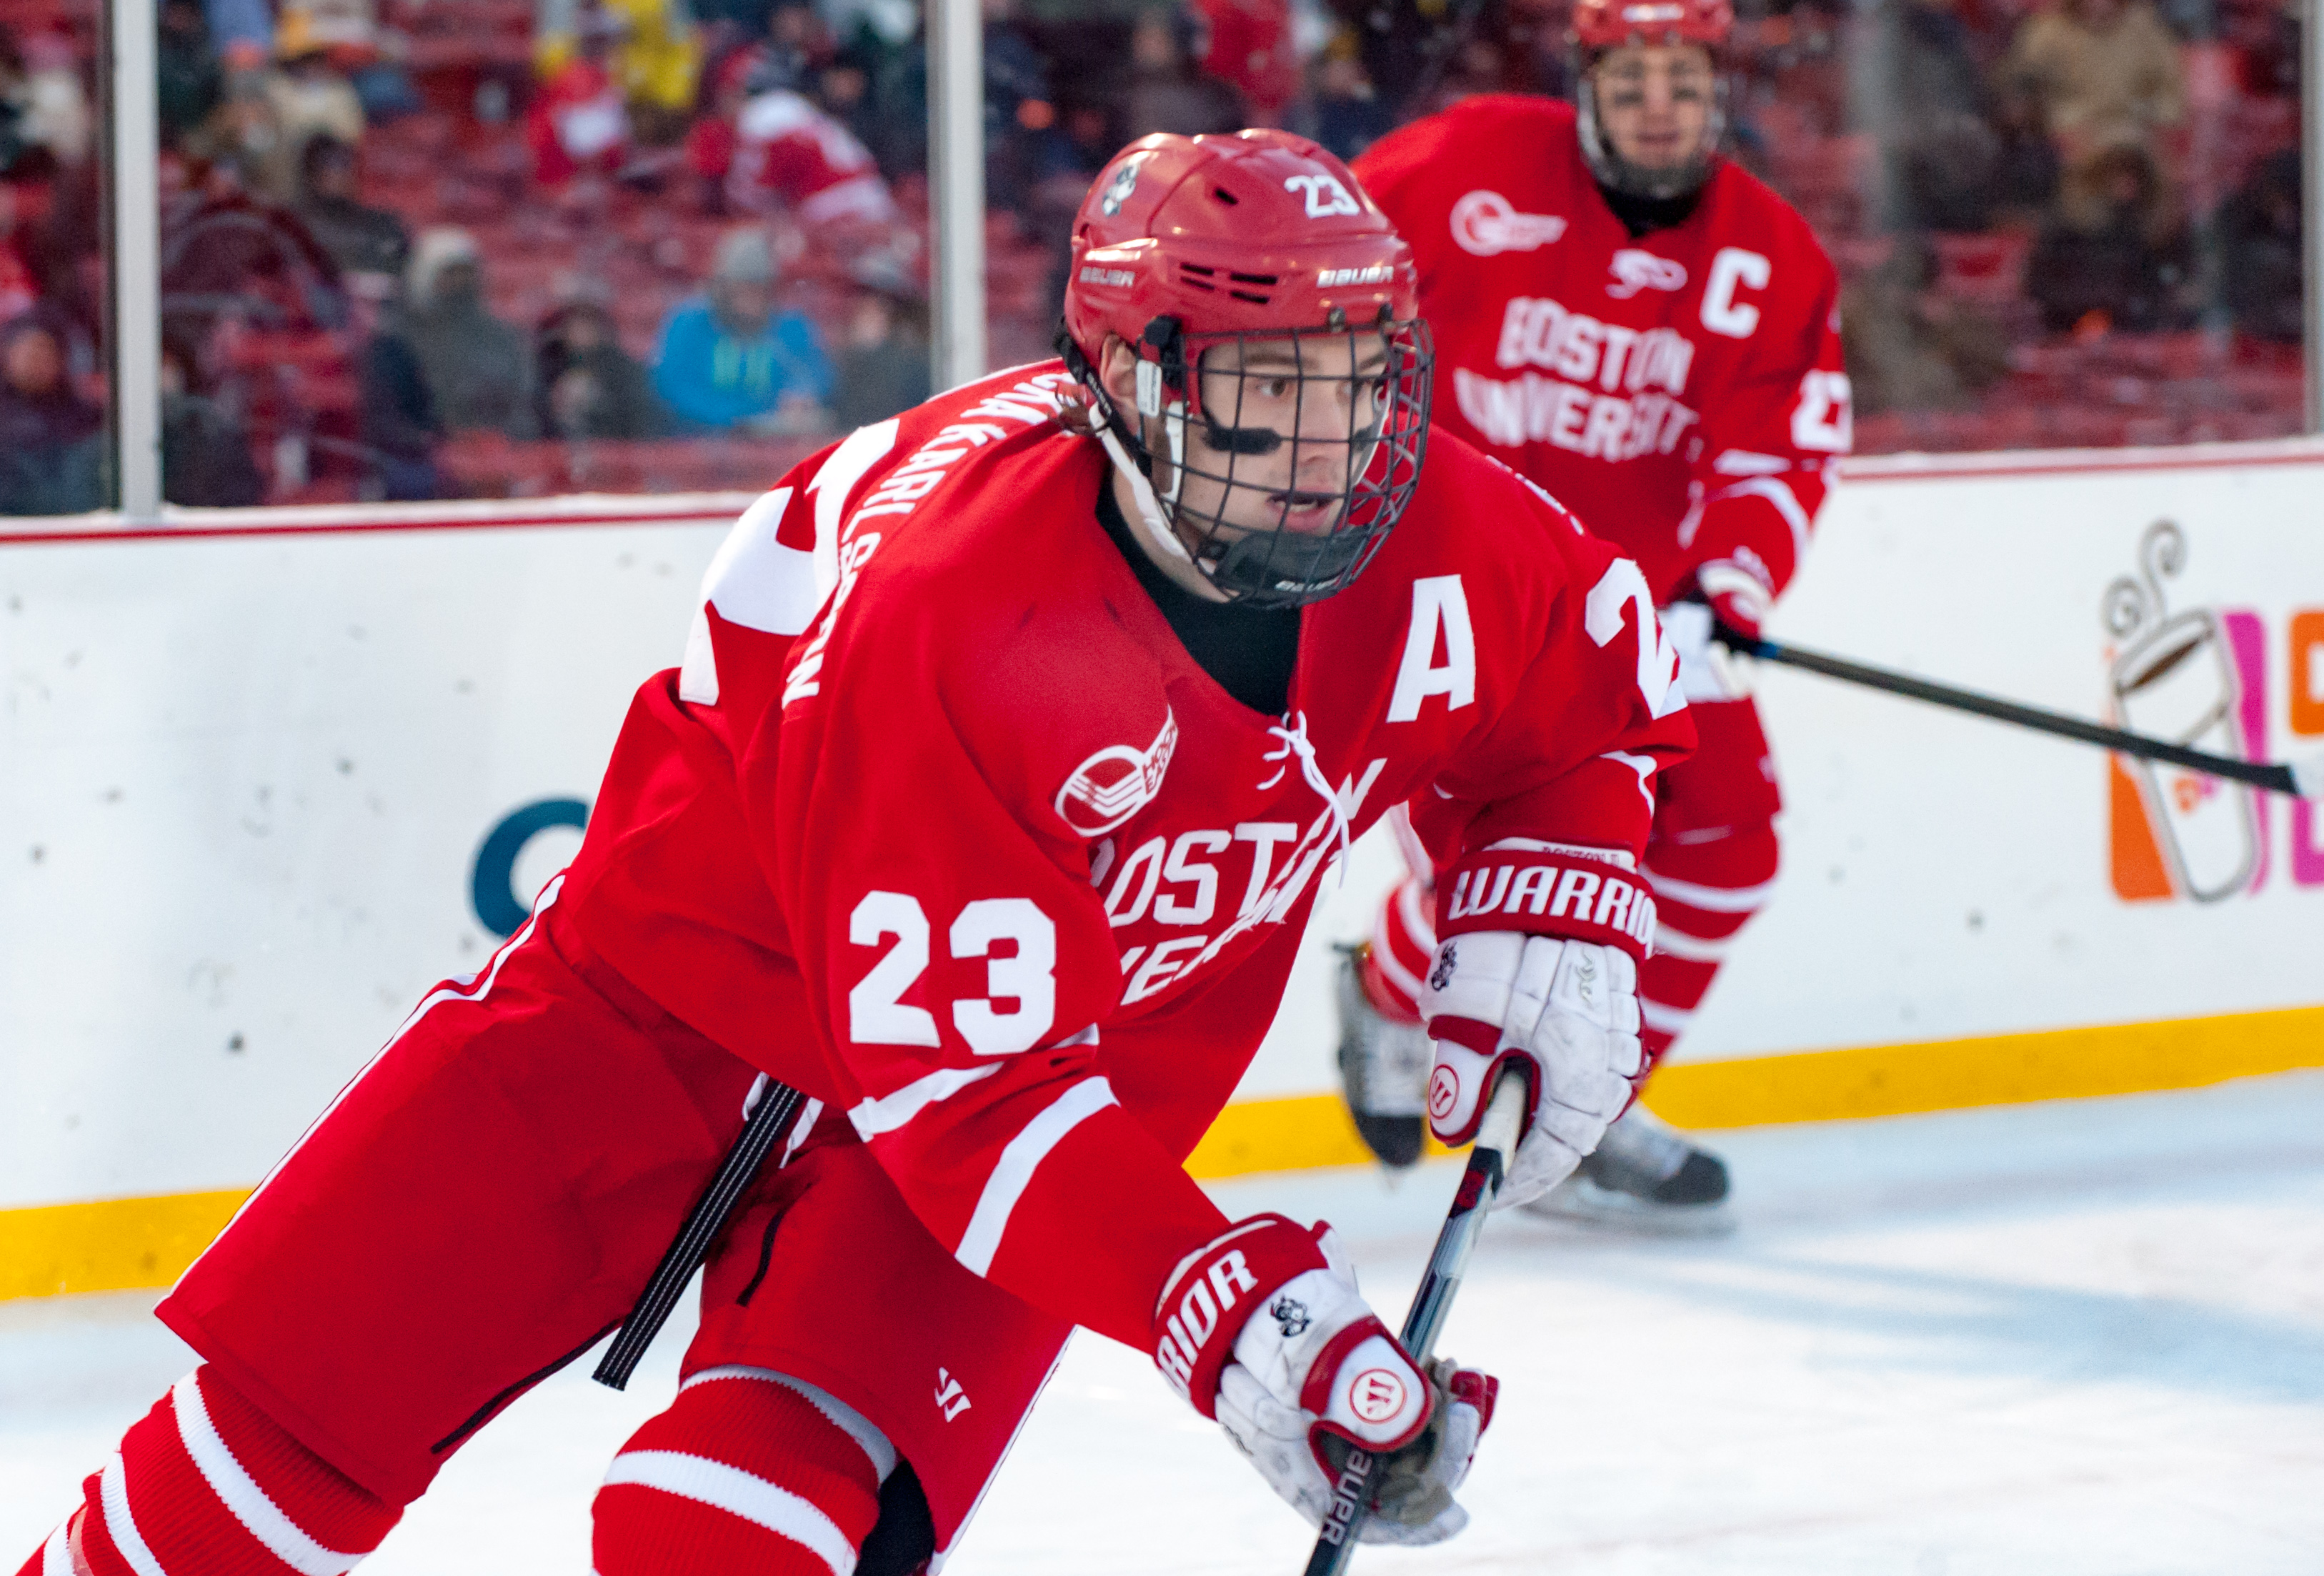 NCAA: Beanpot Represents Changing Face Of College Hockey